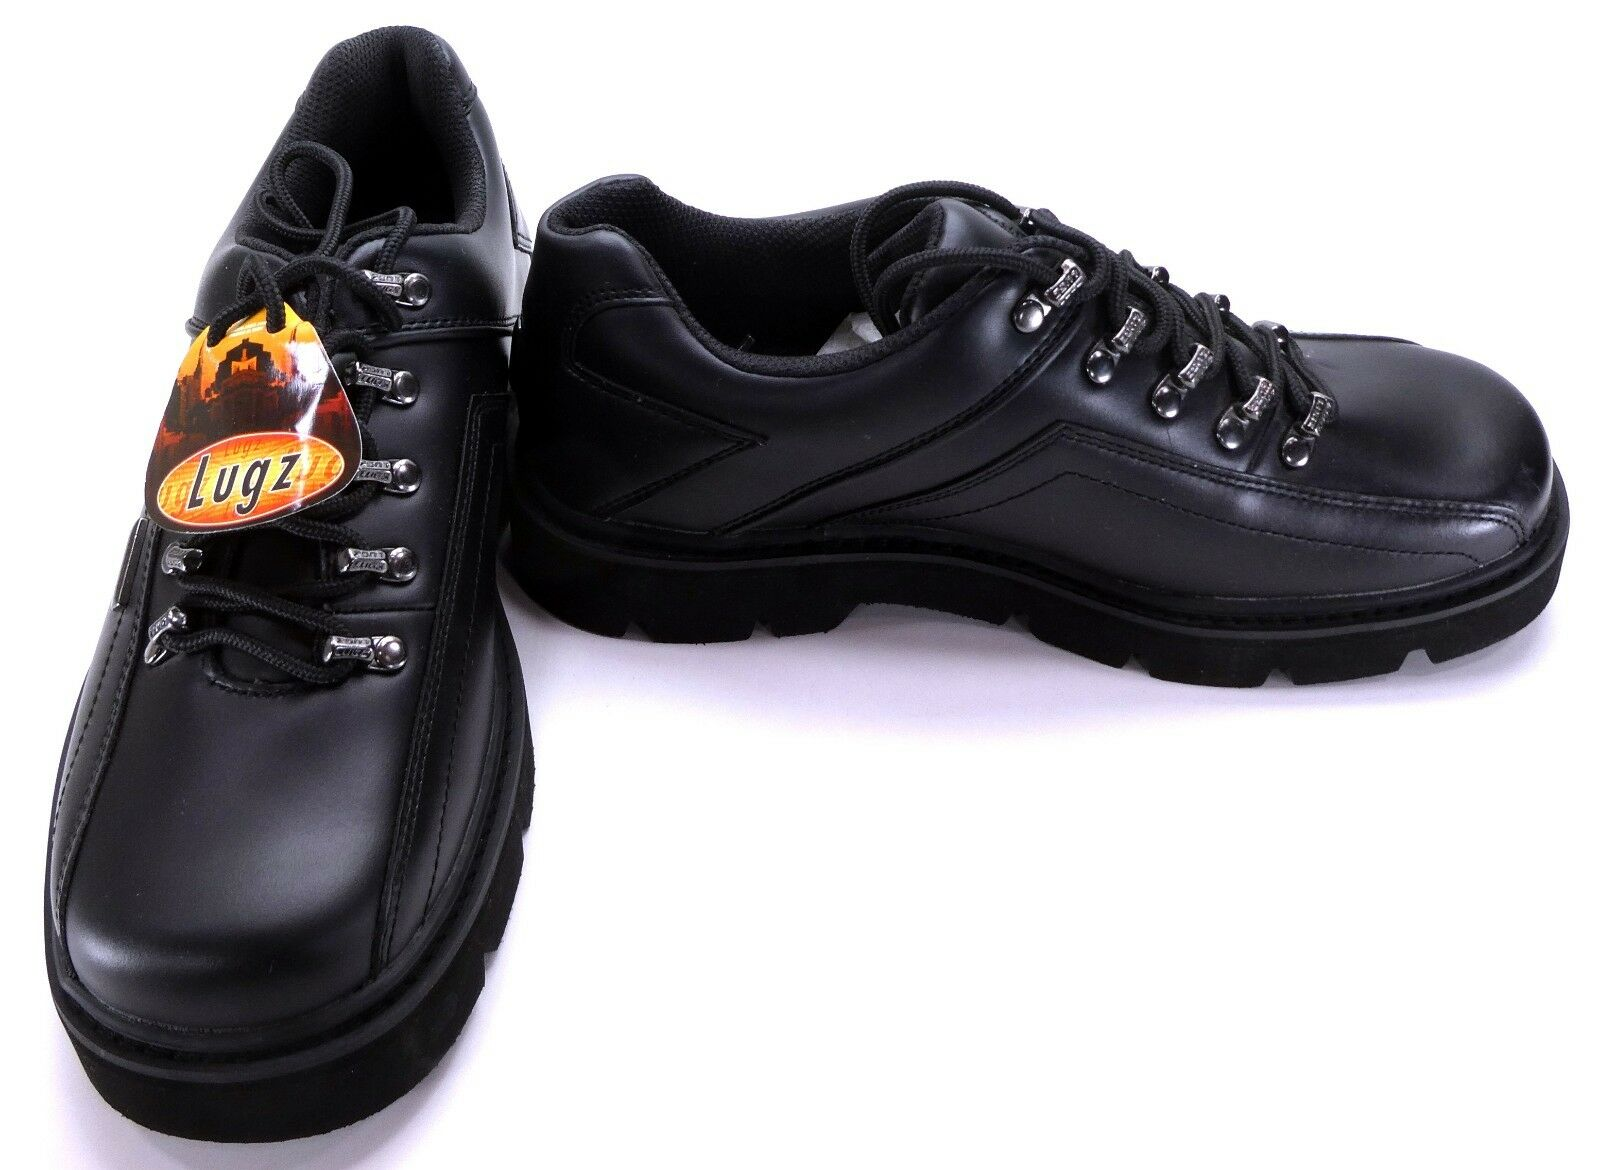 Lugz Shoes Turnaround Athletic Leather Black Sneakers Size 9